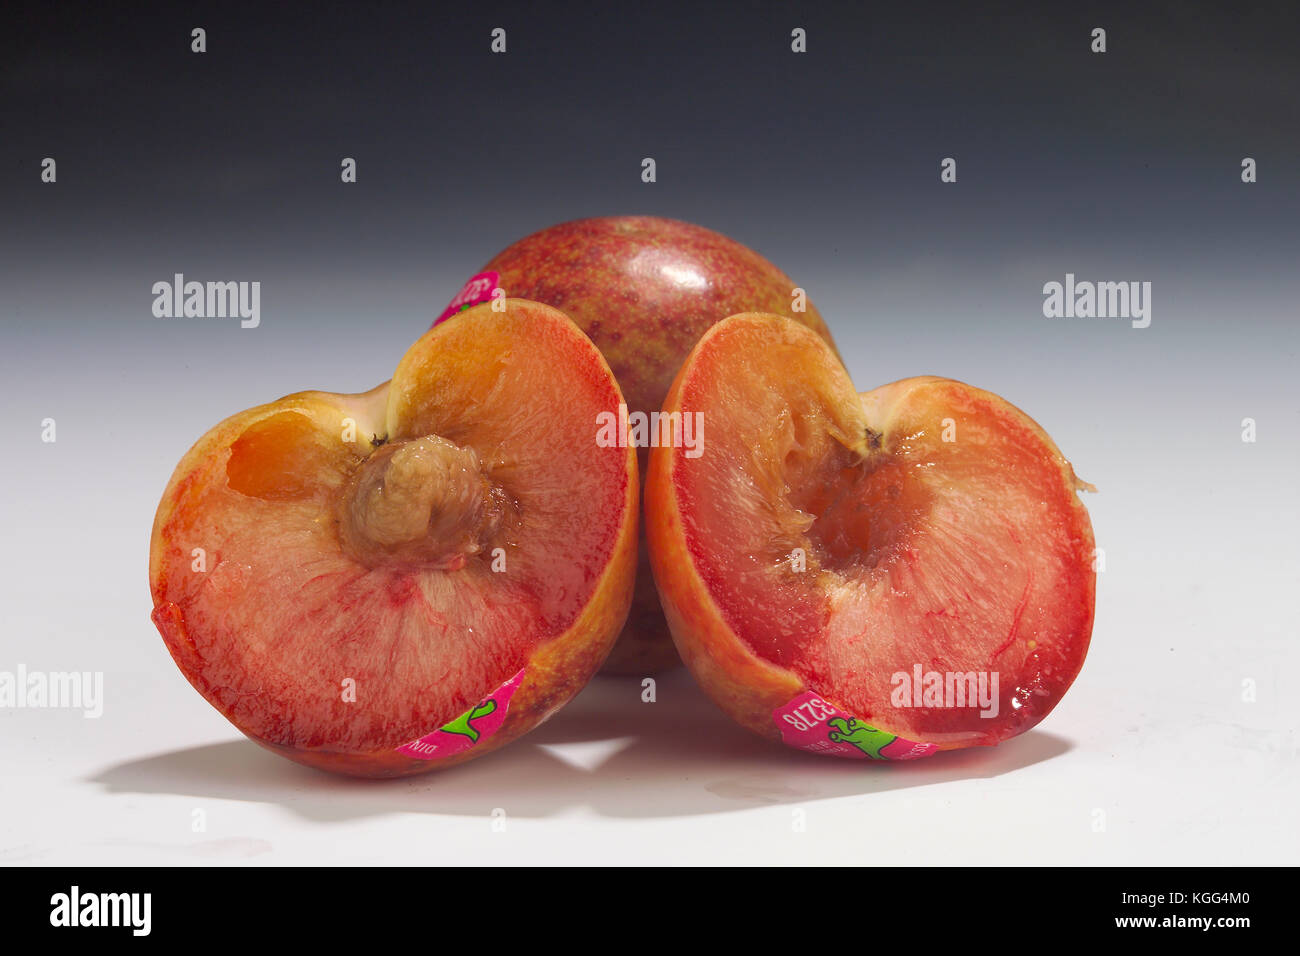 DINOSAUR EGG PLUOT WHOLE AND HALF IN STUDIO - Stock Image